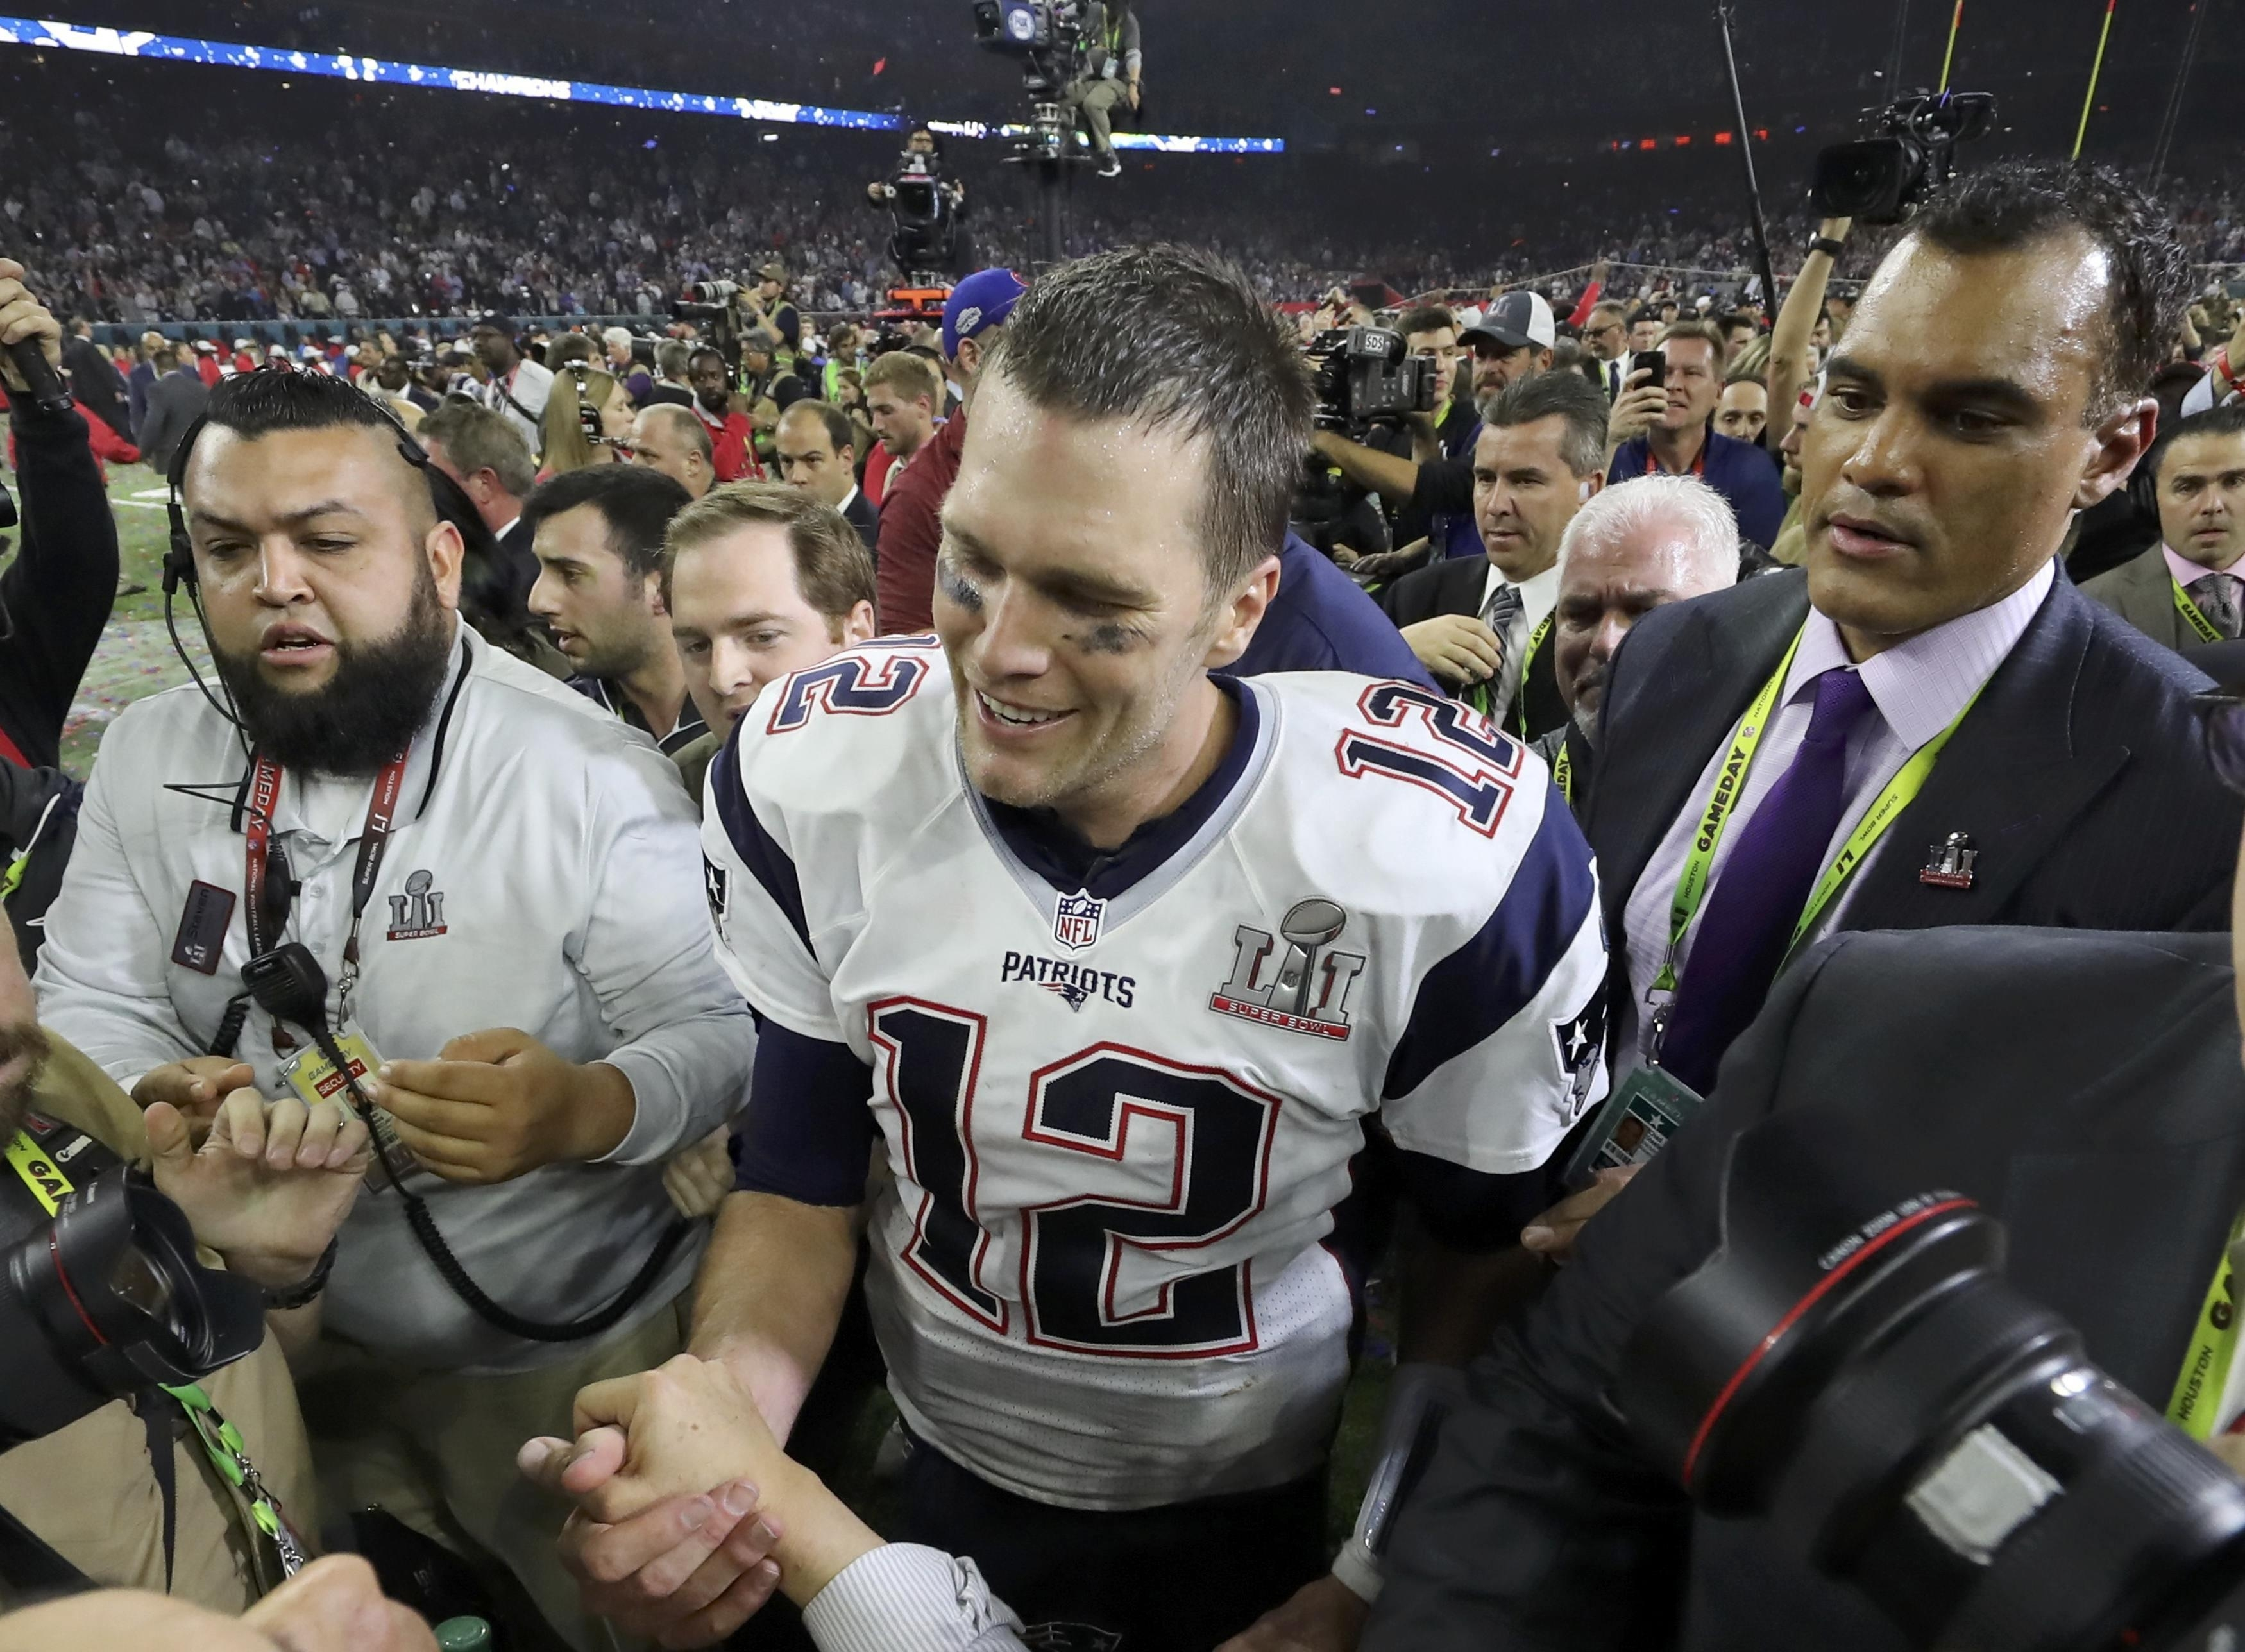 Tom Brady Says His Super Bowl Li Jersey Missing, Likely for Cbs Super Bowl Mvp Vote